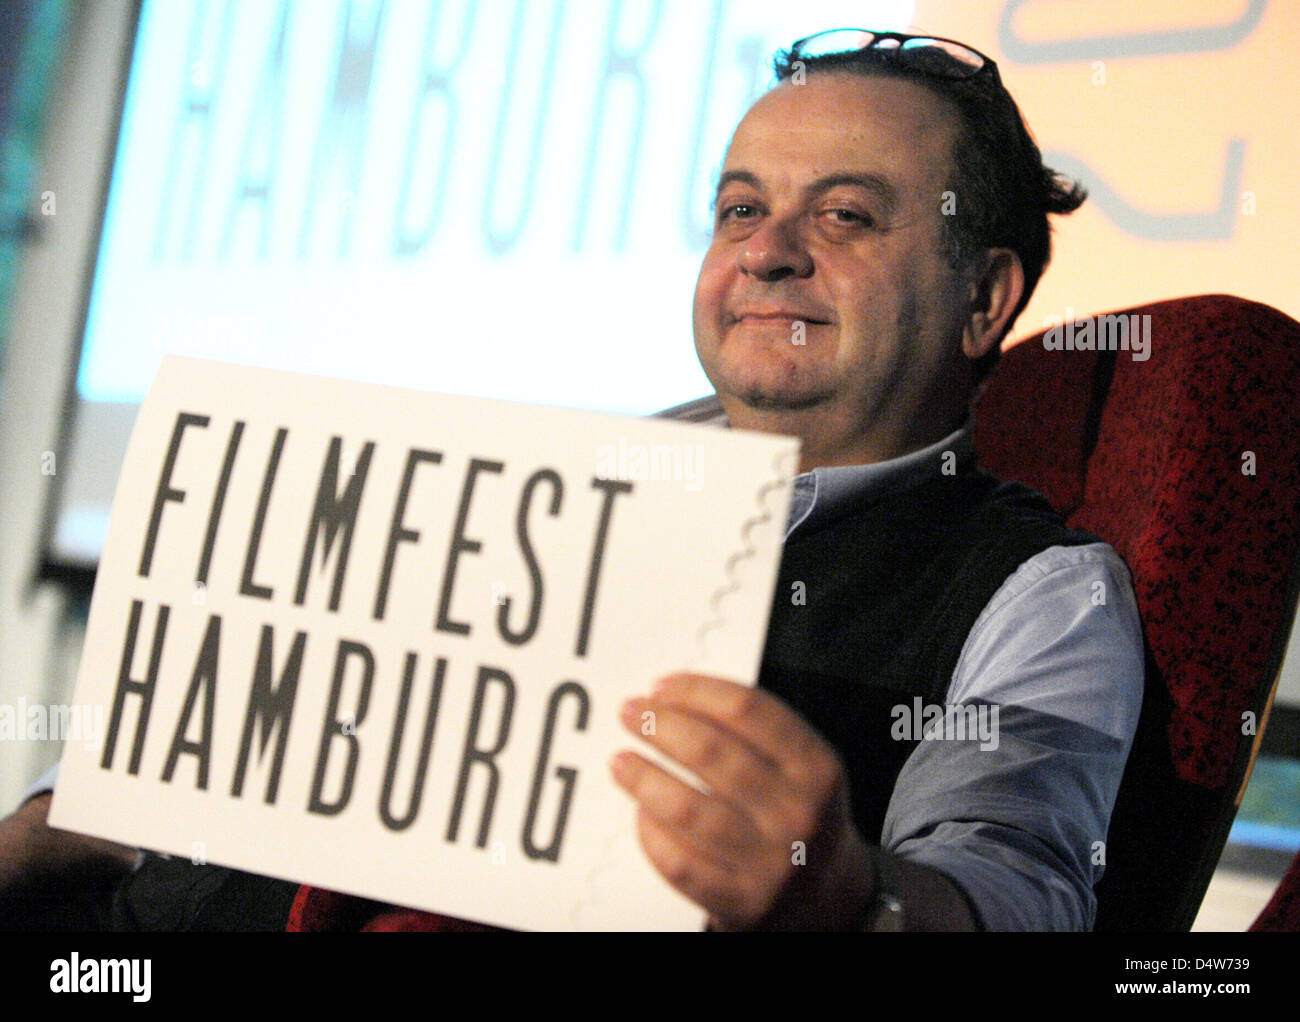 Head of the 18th Hamburg Film Festival, Albert Wiederspiegel, poses with a folder with the lettering 'Filmfest - Stock Image